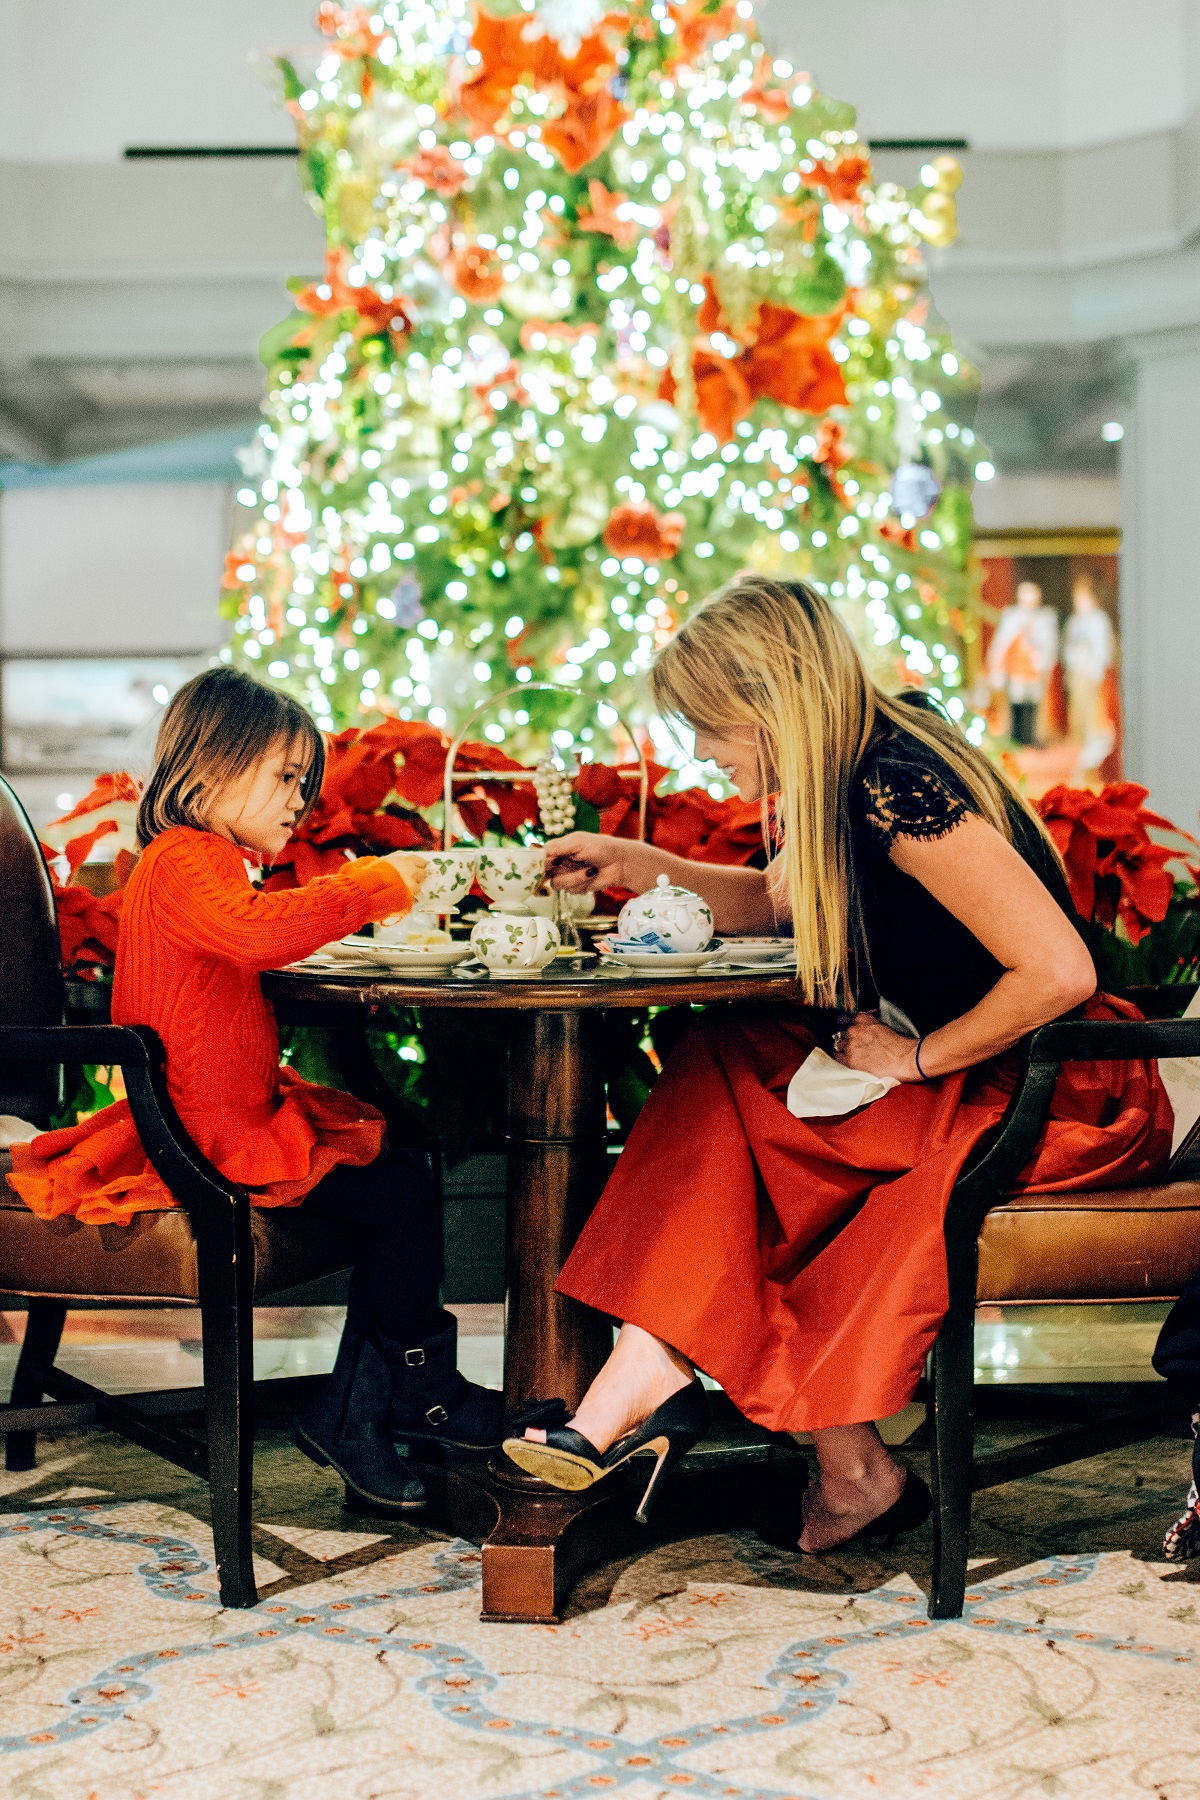 Grand Hotels In New Orleans Sparkle During The Holidays